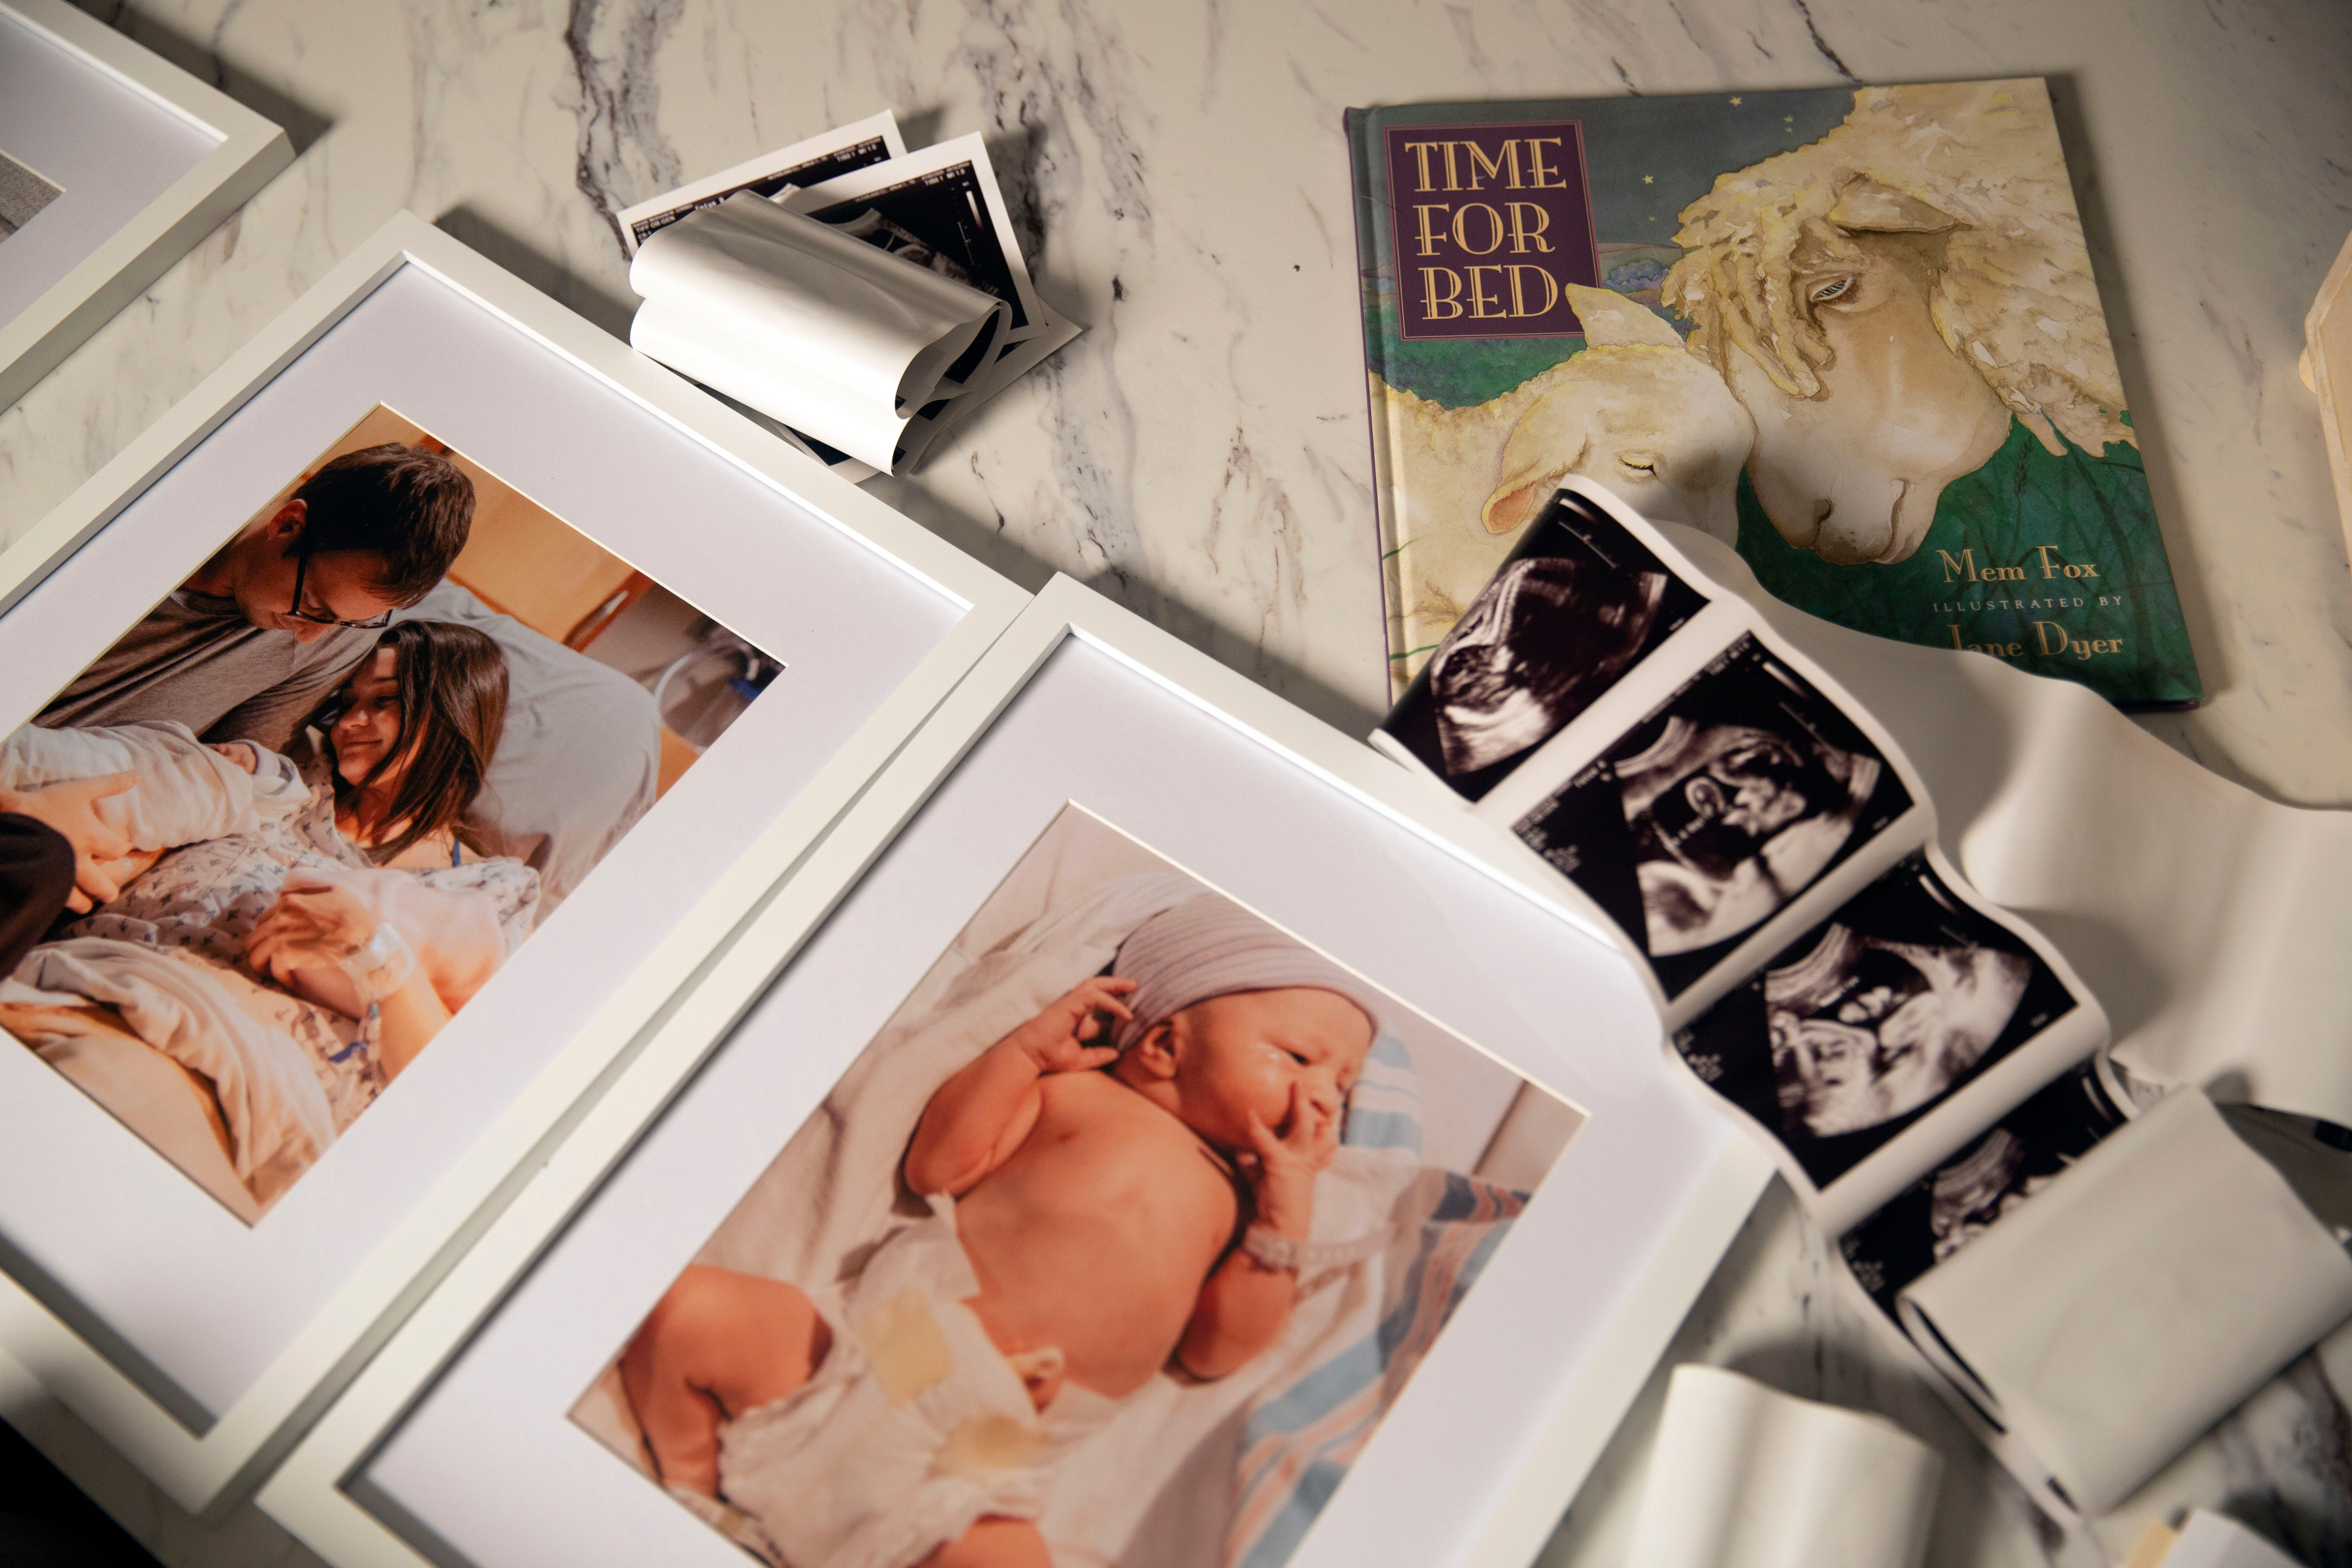 Clayton Harreld says Cherish Shuka did a really good job capturing the good memories of their twins' birth and what the Harrelds want to remember about their daughter, Blakely.